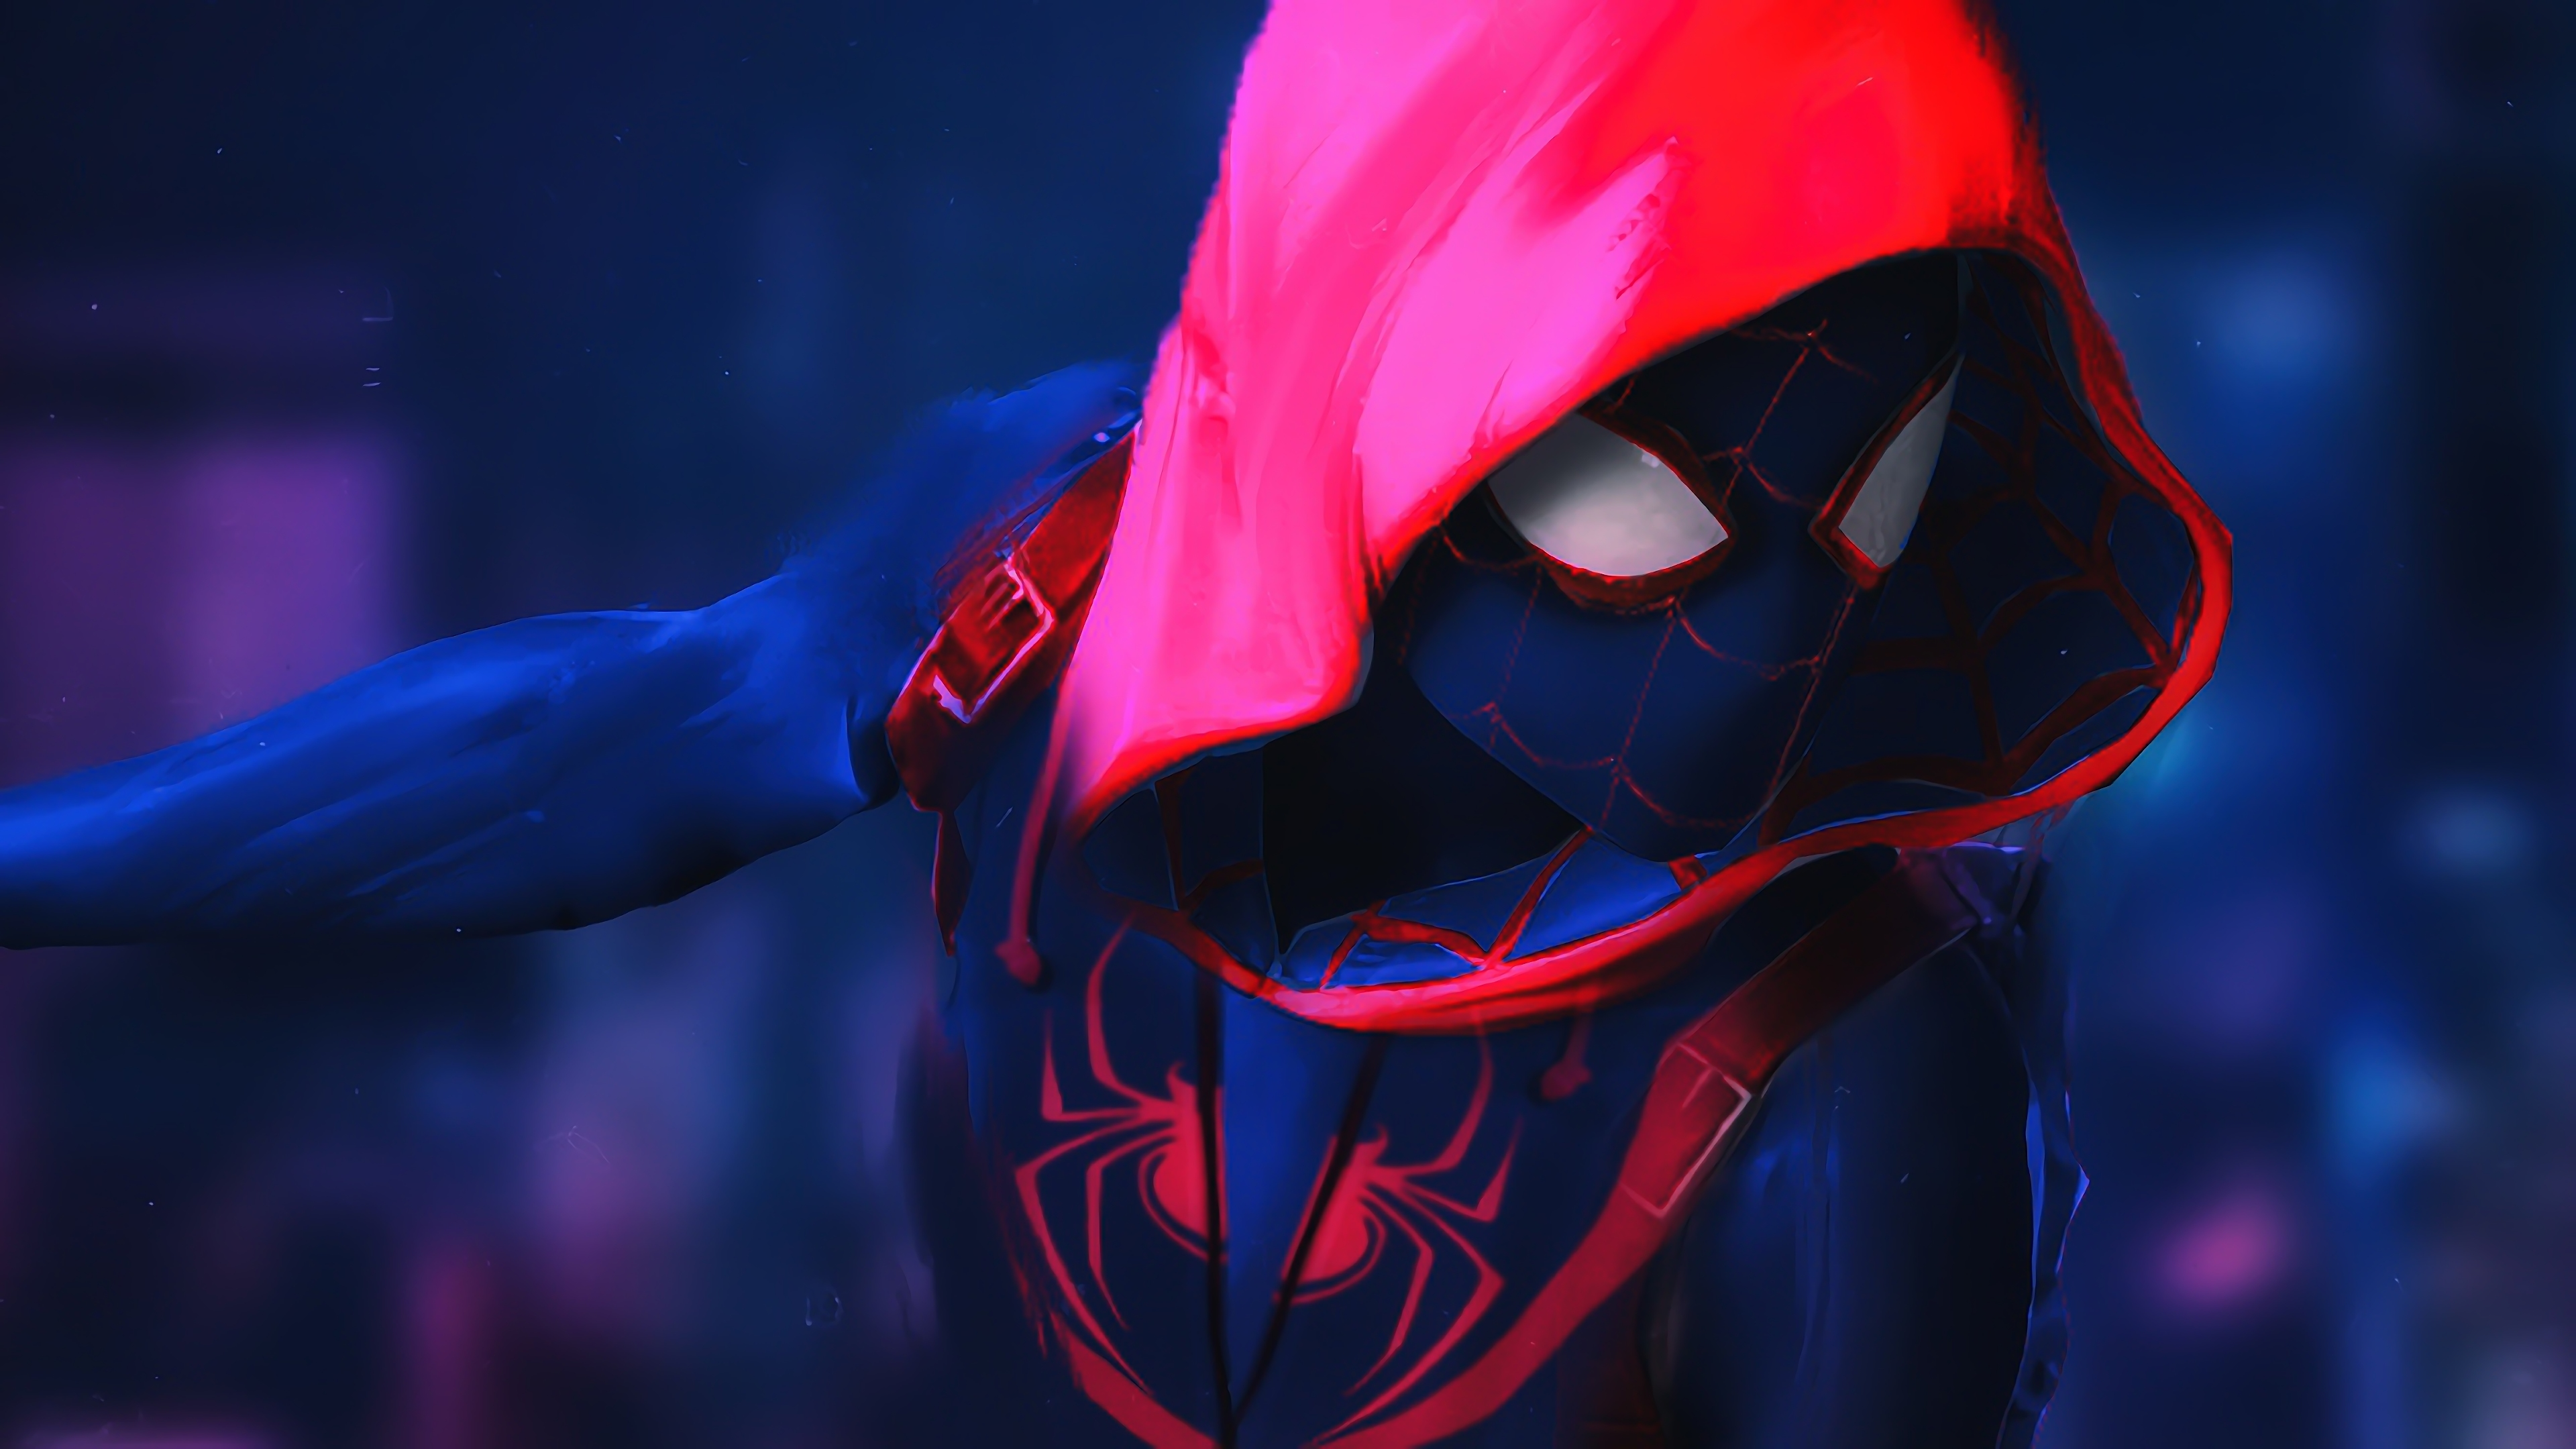 1920x1080 SpiderMan Into The Spider Verse Movie 4k Movie Artwork Laptop Full HD 1080P HD 4k